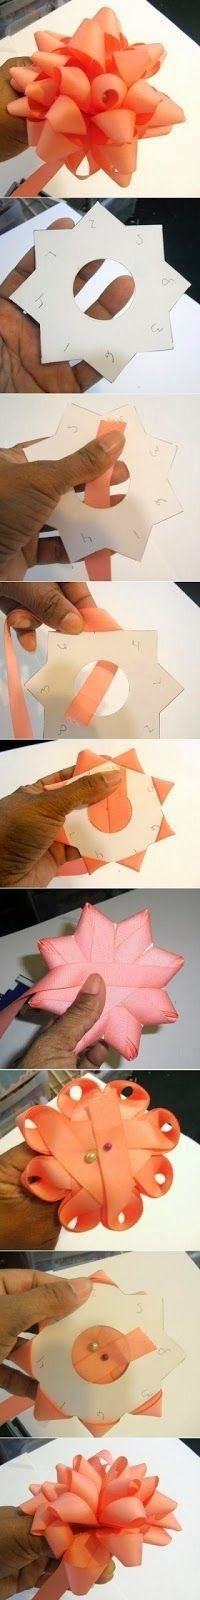 TwistMaterialz: DIY Ribbon Bow